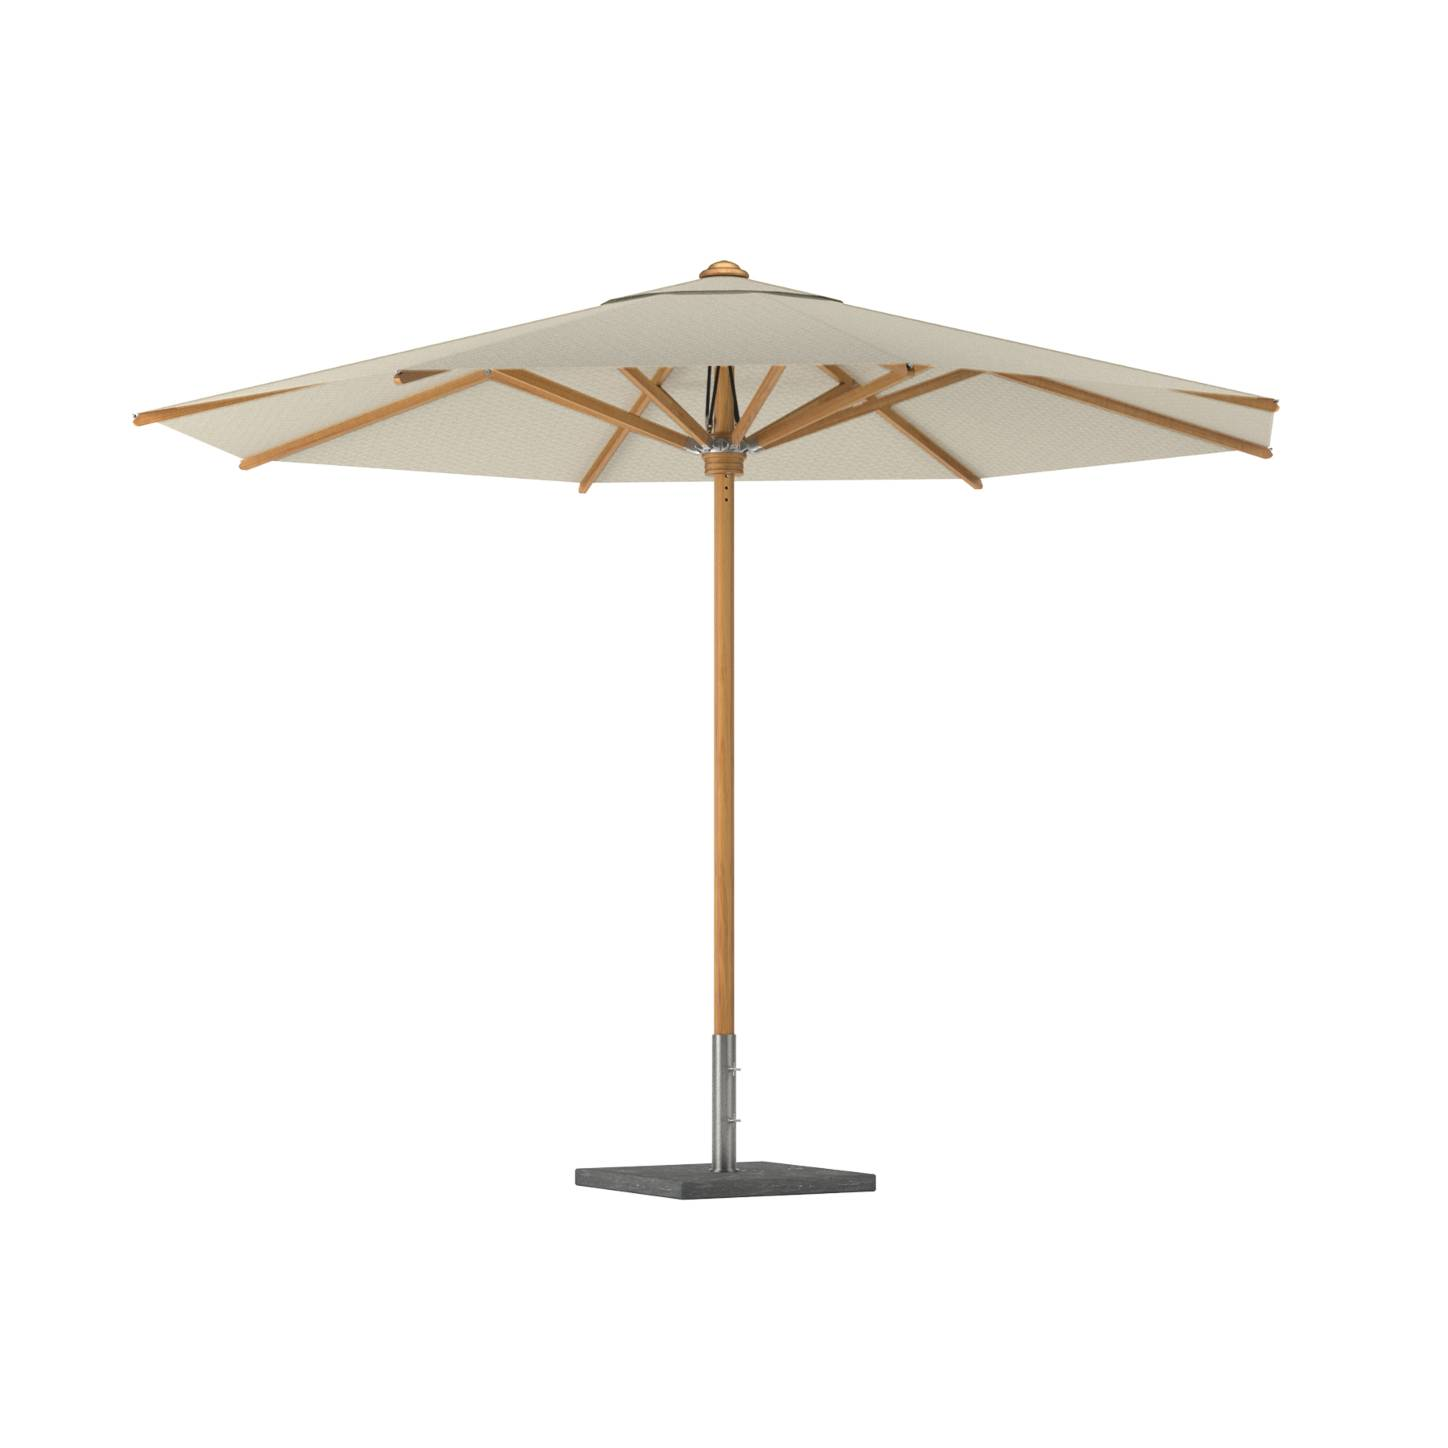 ROYA BOTANIA Shady Teak Umbrella 2